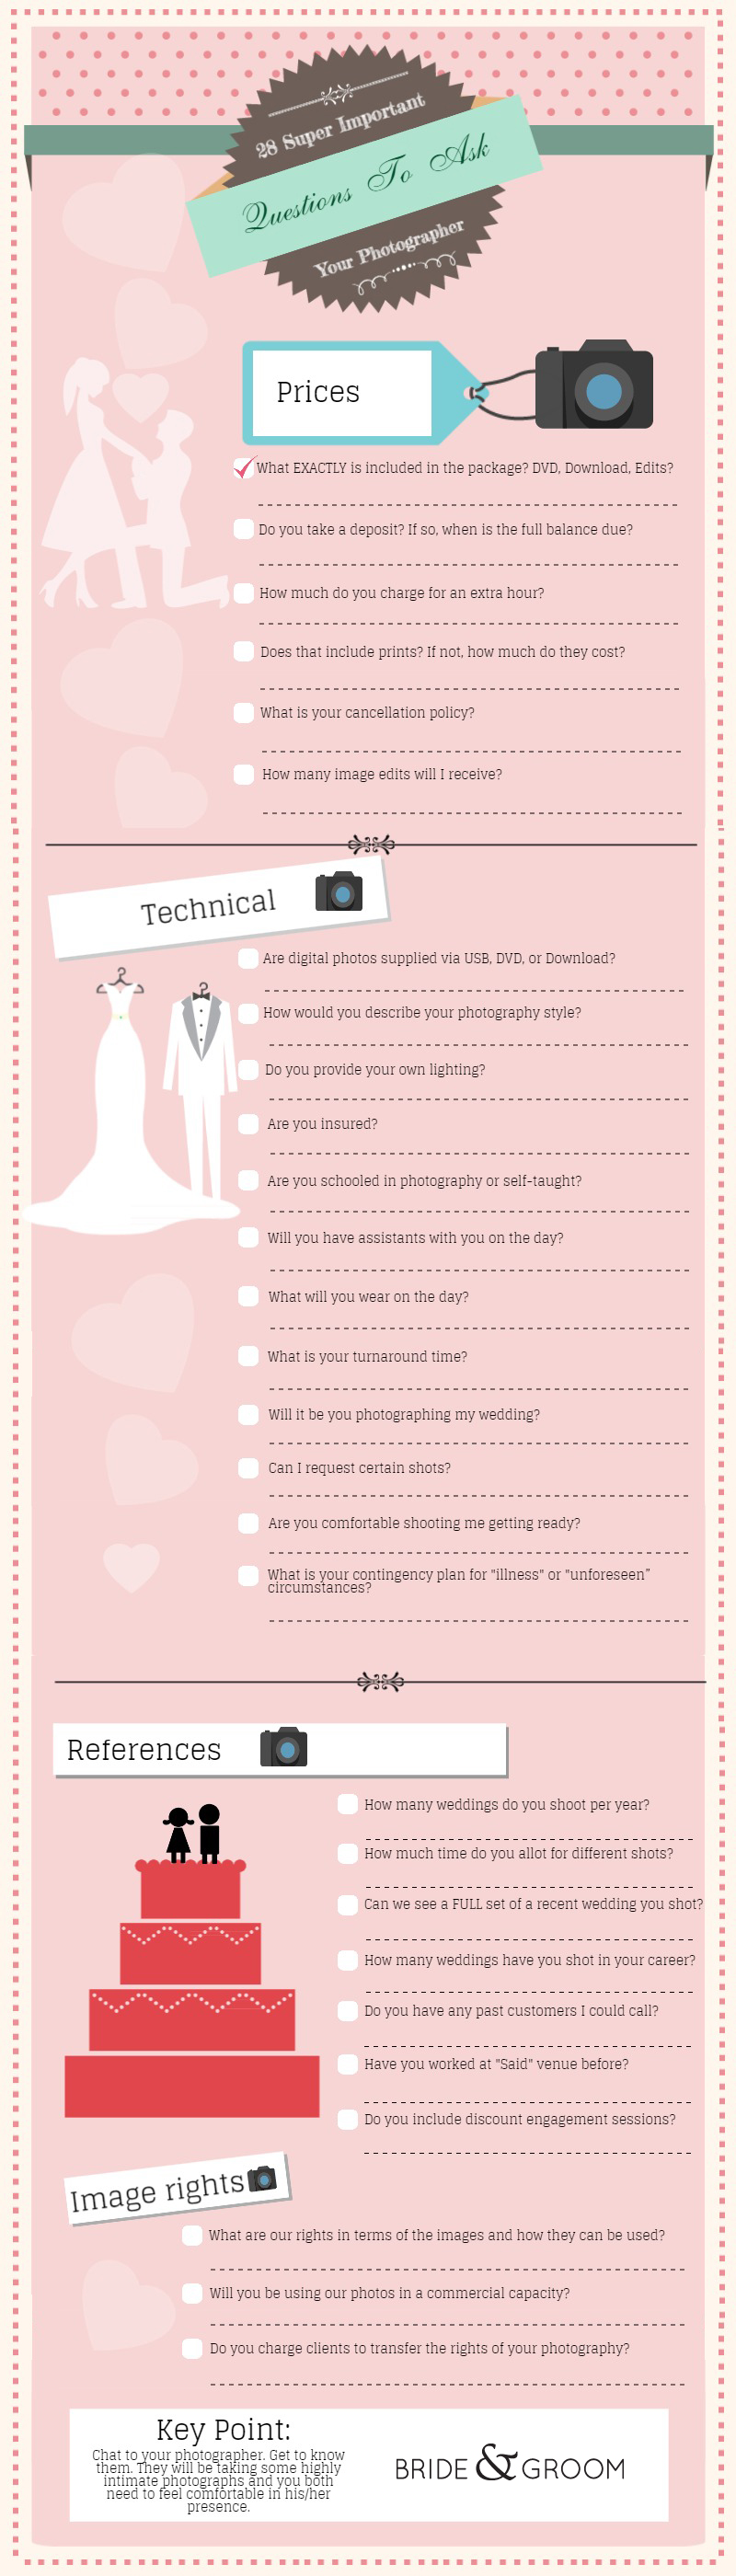 WEDDING-GRAPHIC, bride and groom direct, wedding photography questions, wedding photographer